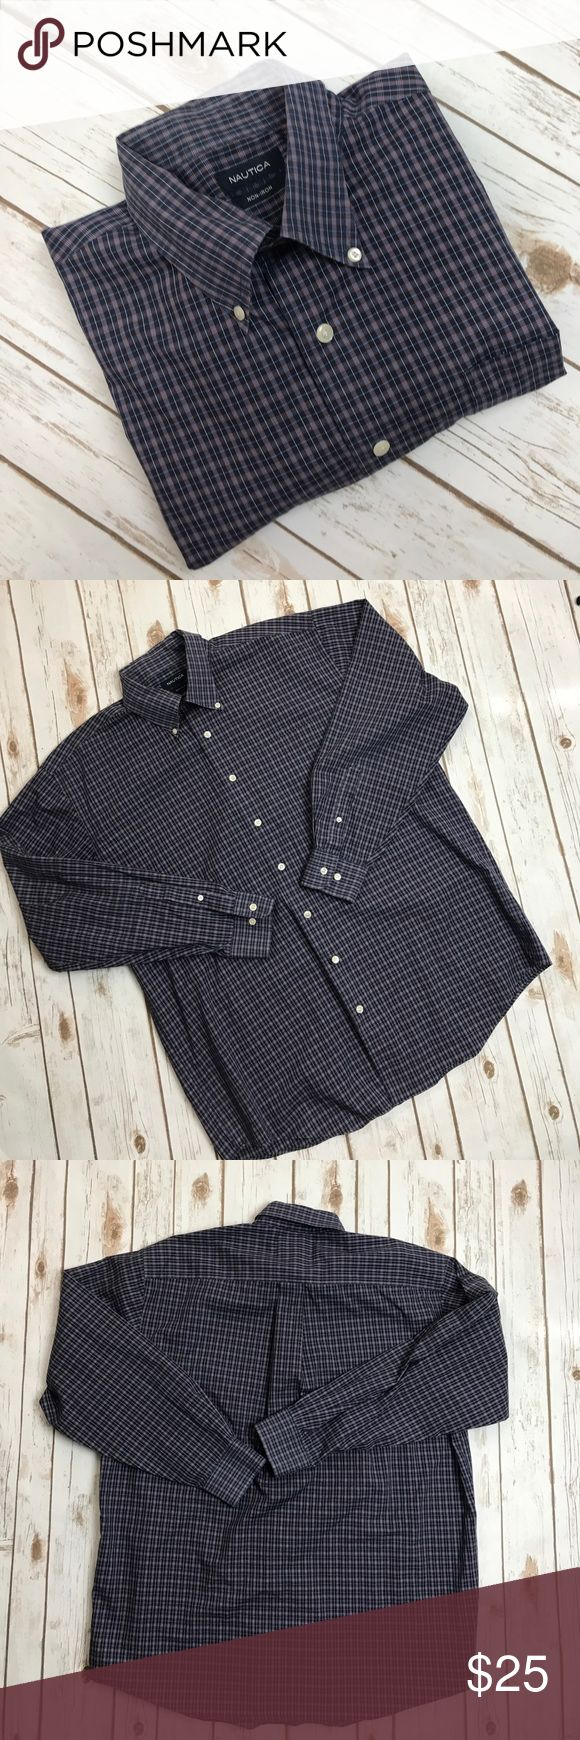 """Nautica Men's plaid shirt No rips or stains. Great condition. 100% Cotton. Armpit to Armpit 25 1/2"""" Length 32"""" Sleeve length 24"""" Nautica Shirts Casual Button Down Shirts"""